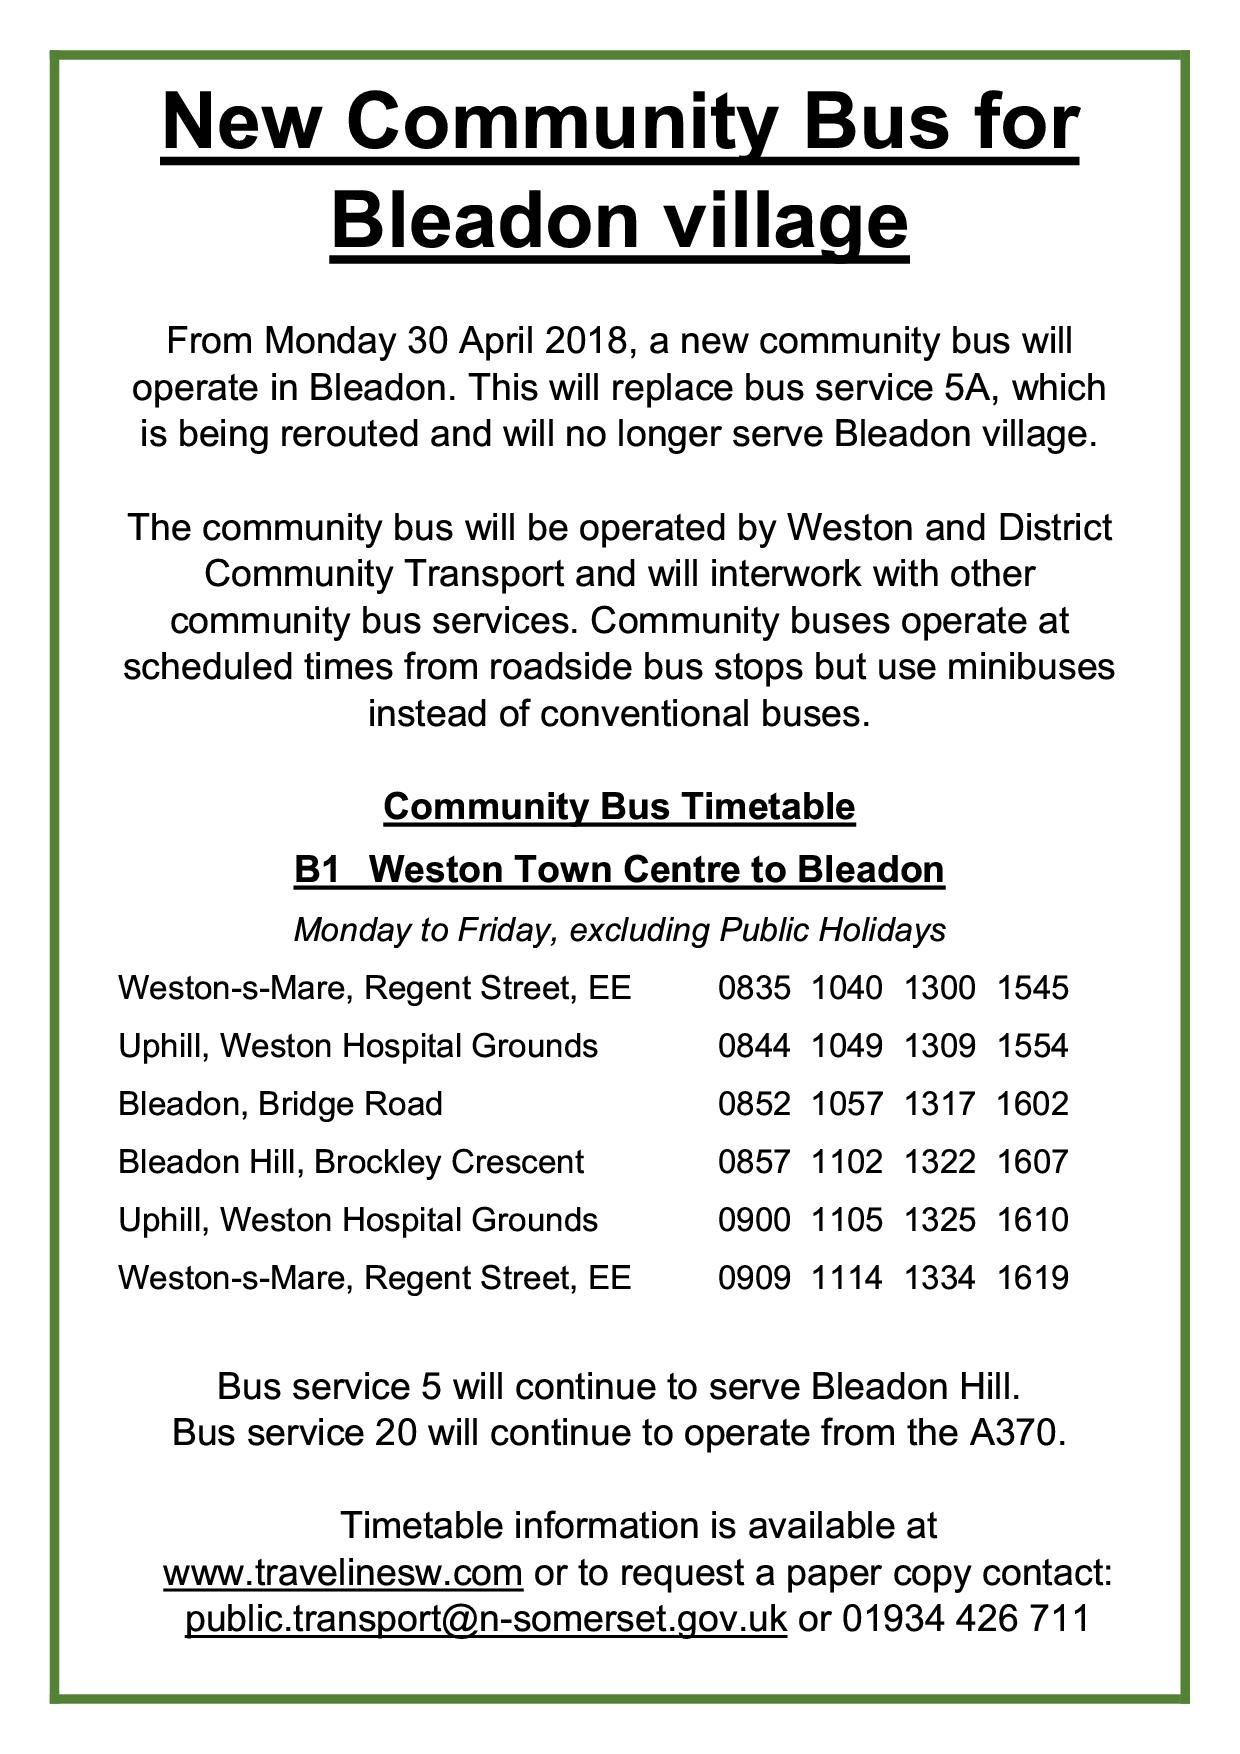 Bleadon Community Bus Information